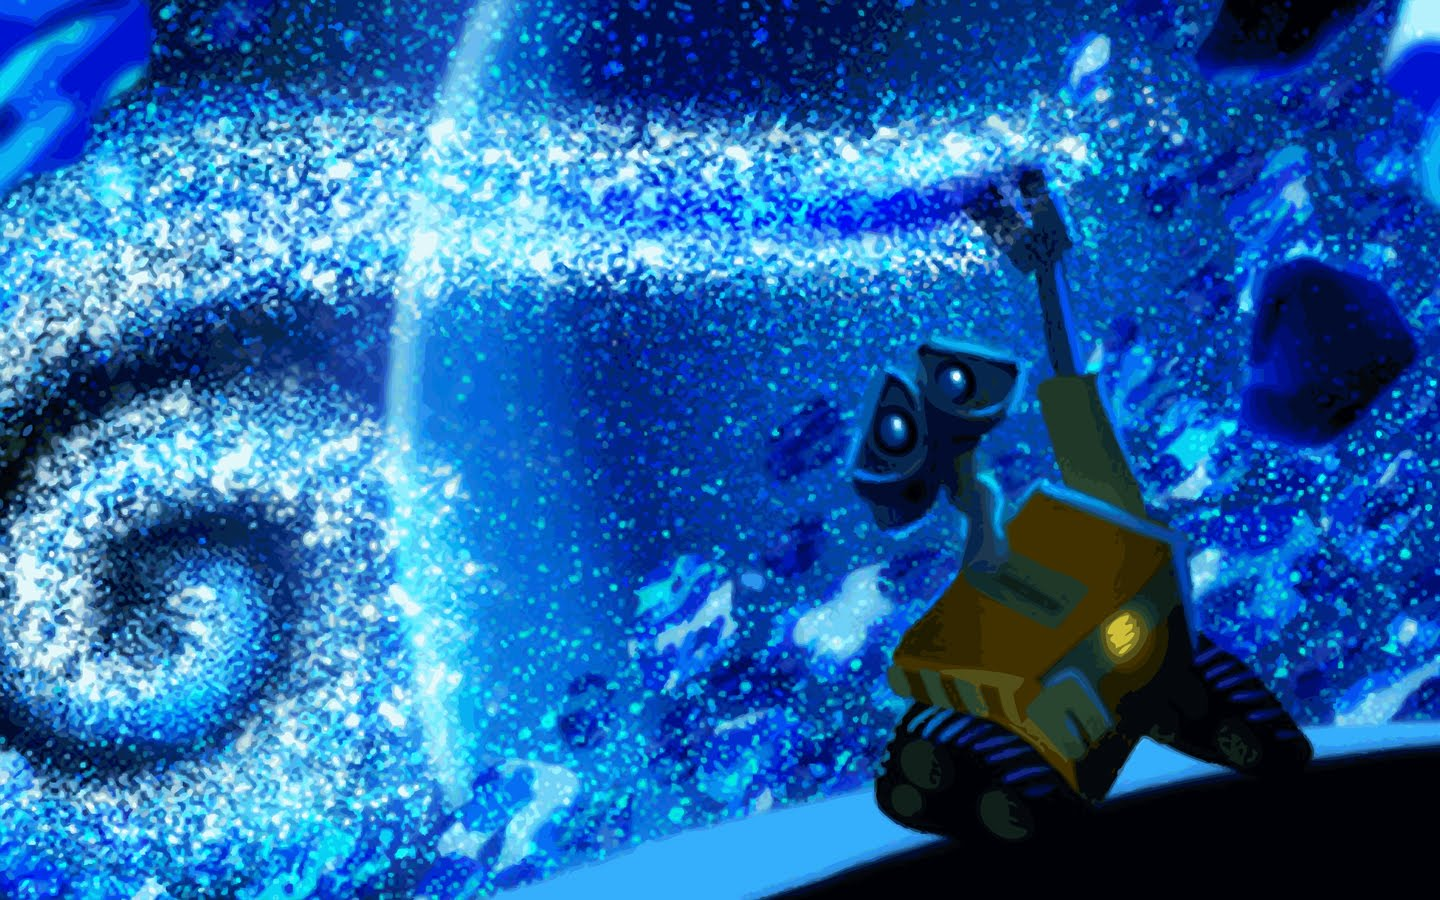 wall-e « awesome wallpapers